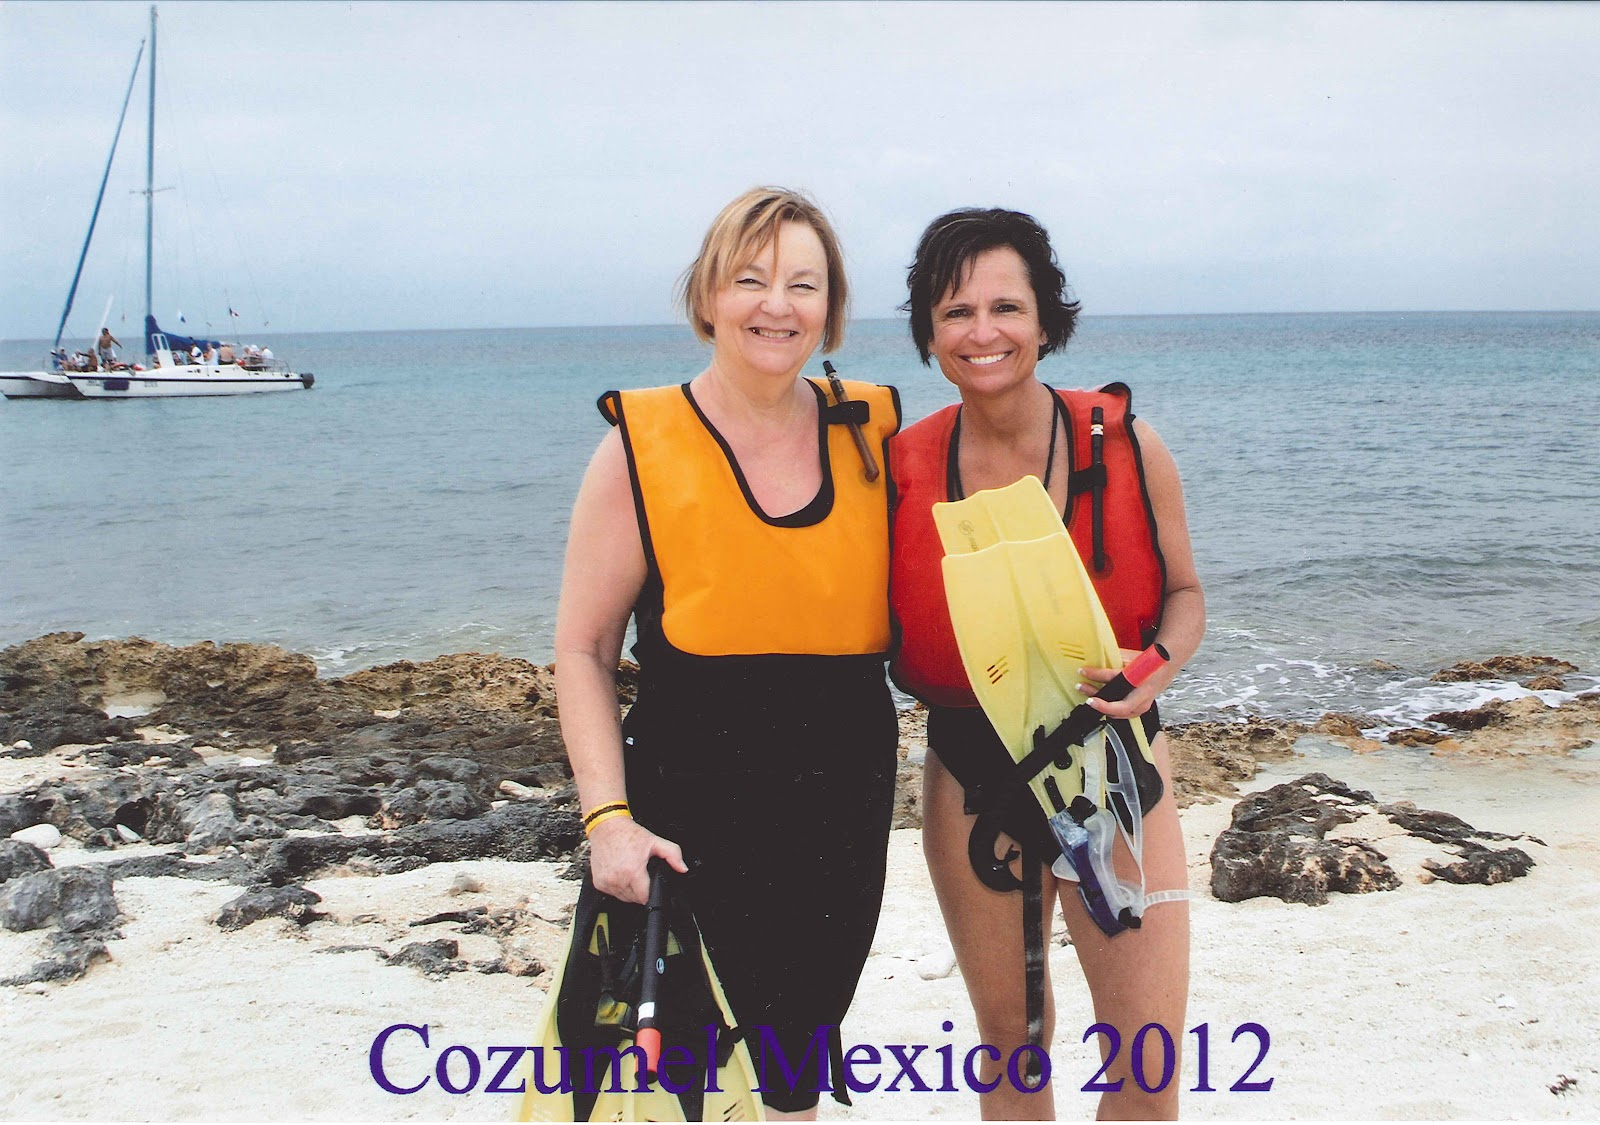 Our third stop was in Cozumel mexico. Kayaking in a glass bottom kayak and ...